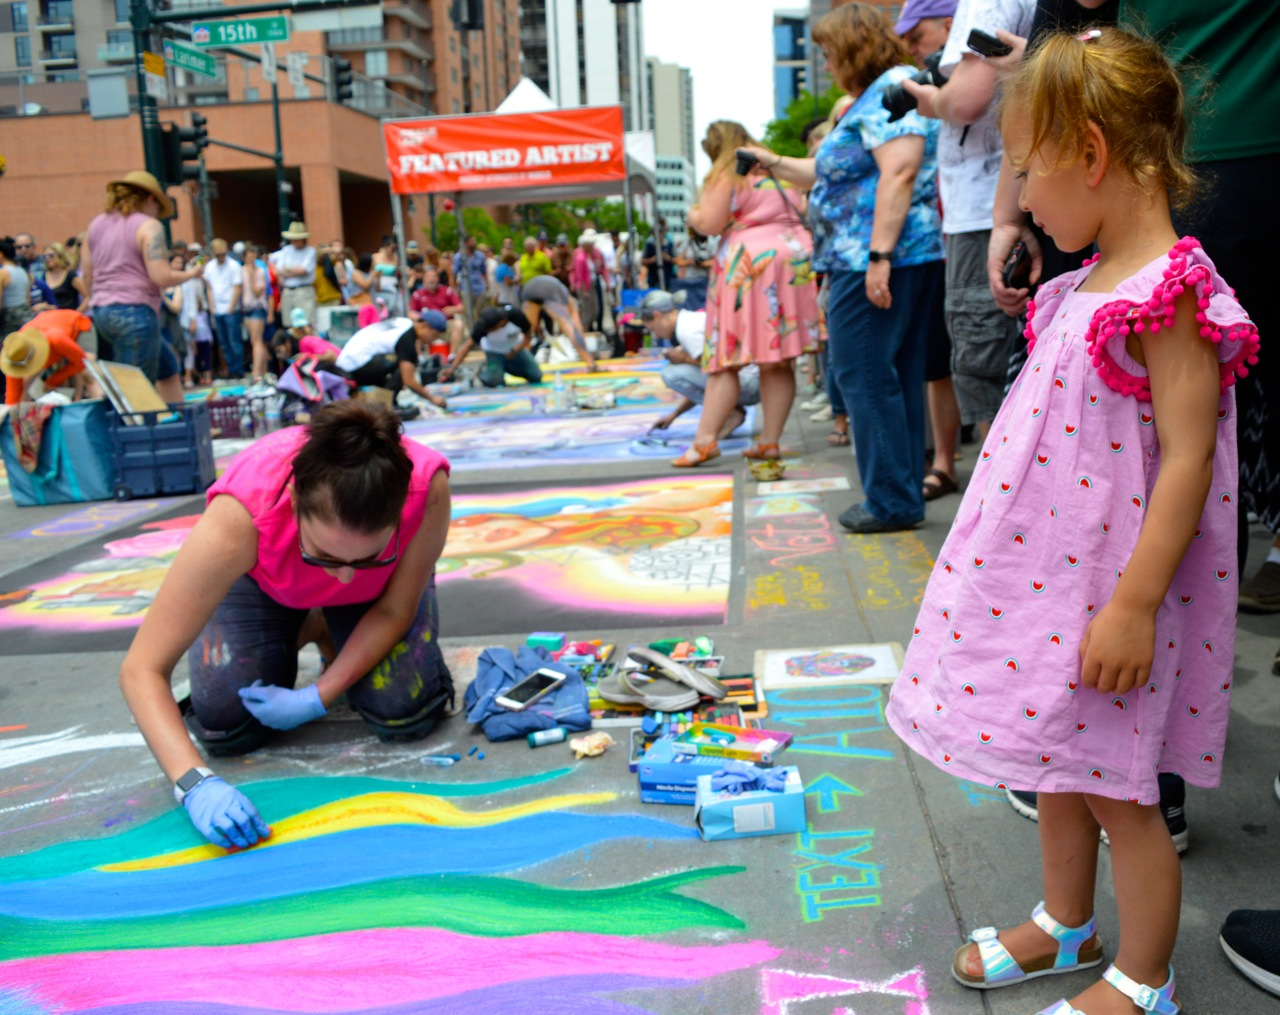 Denver Chalk Art Festival 2018 Photo 9.jpg